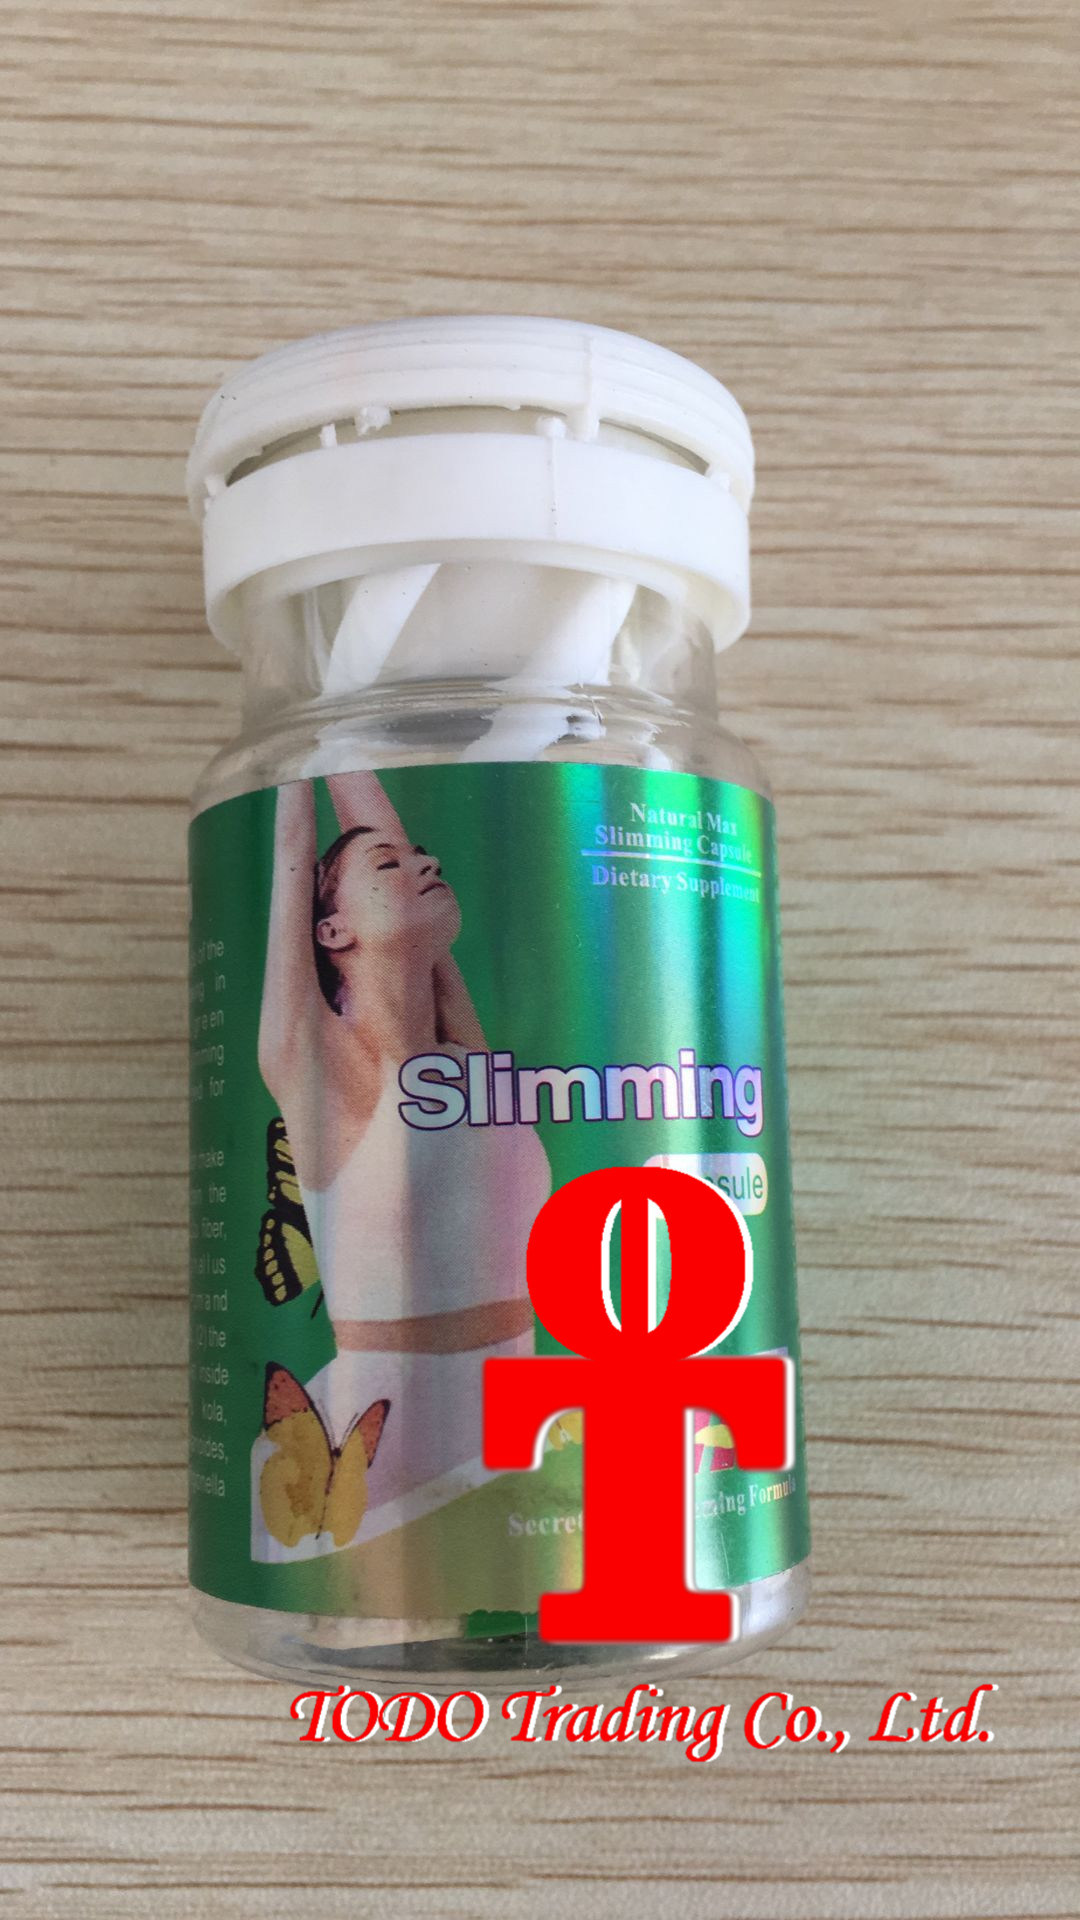 Natural Max Slimming Capsule, Green Box Weight Loss Capsules